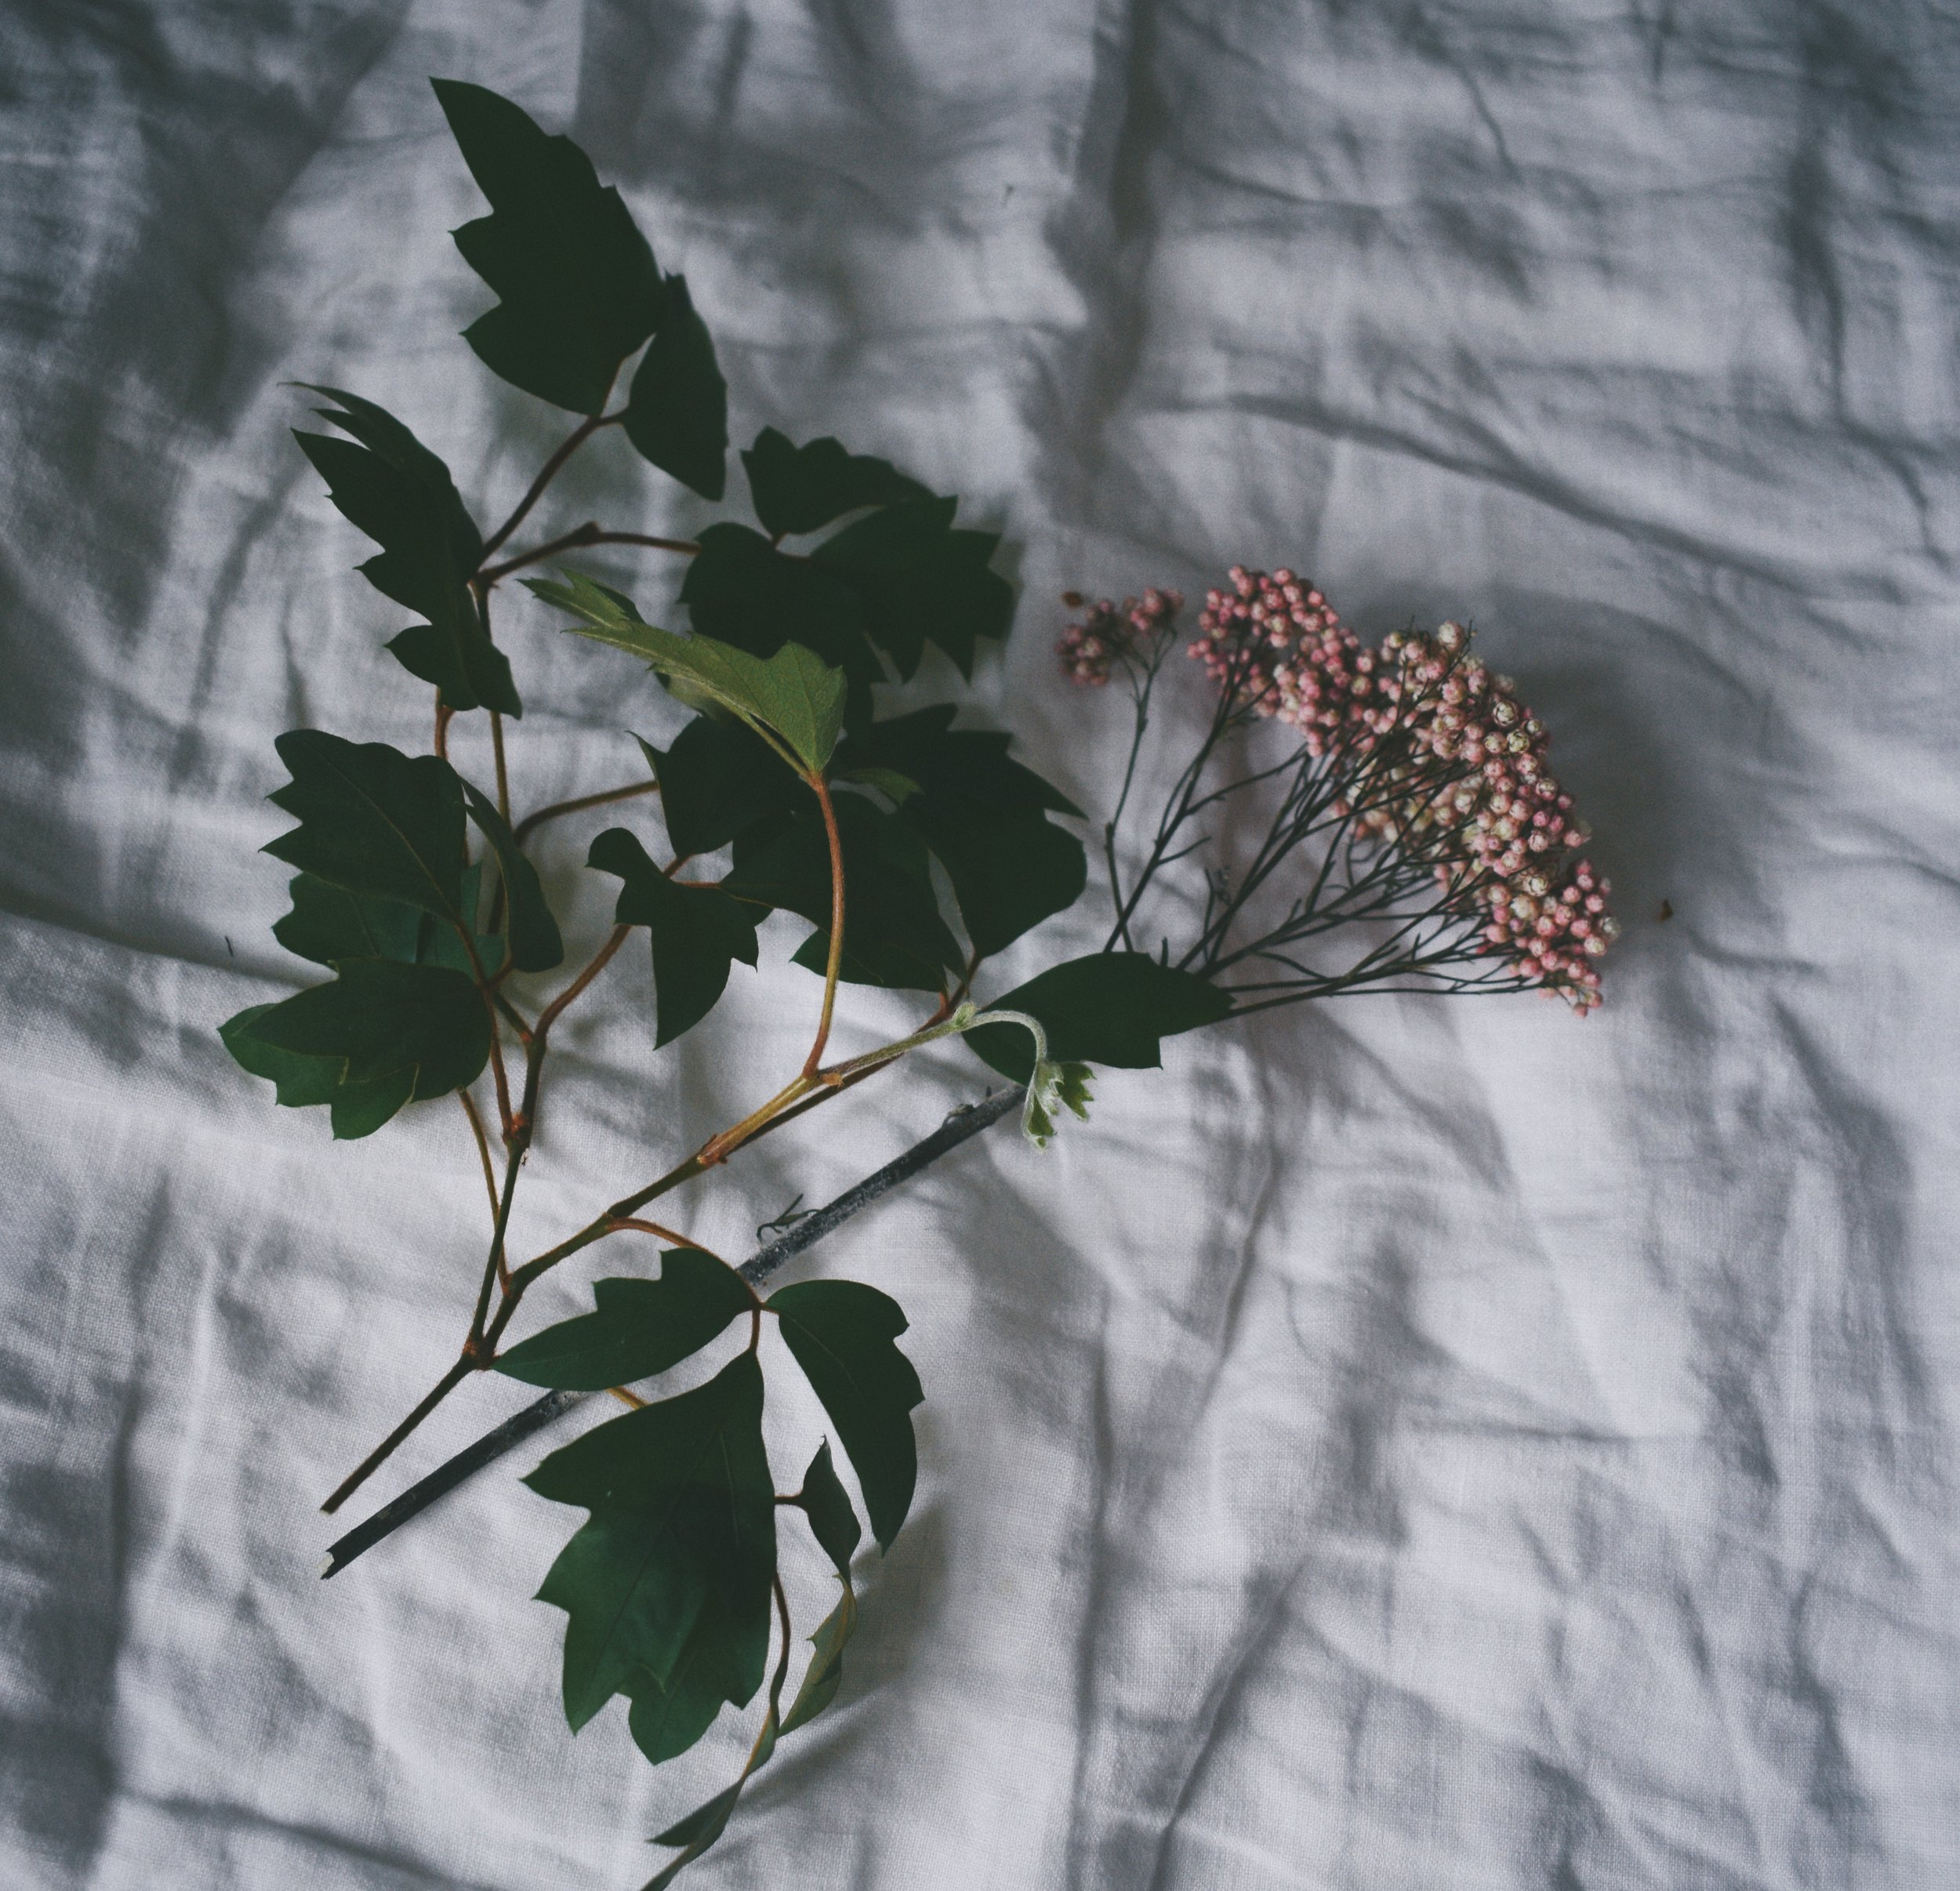 Photos from the Archive-  Celebrating the Imperfect. Pink flowers on crinkled up white sheets